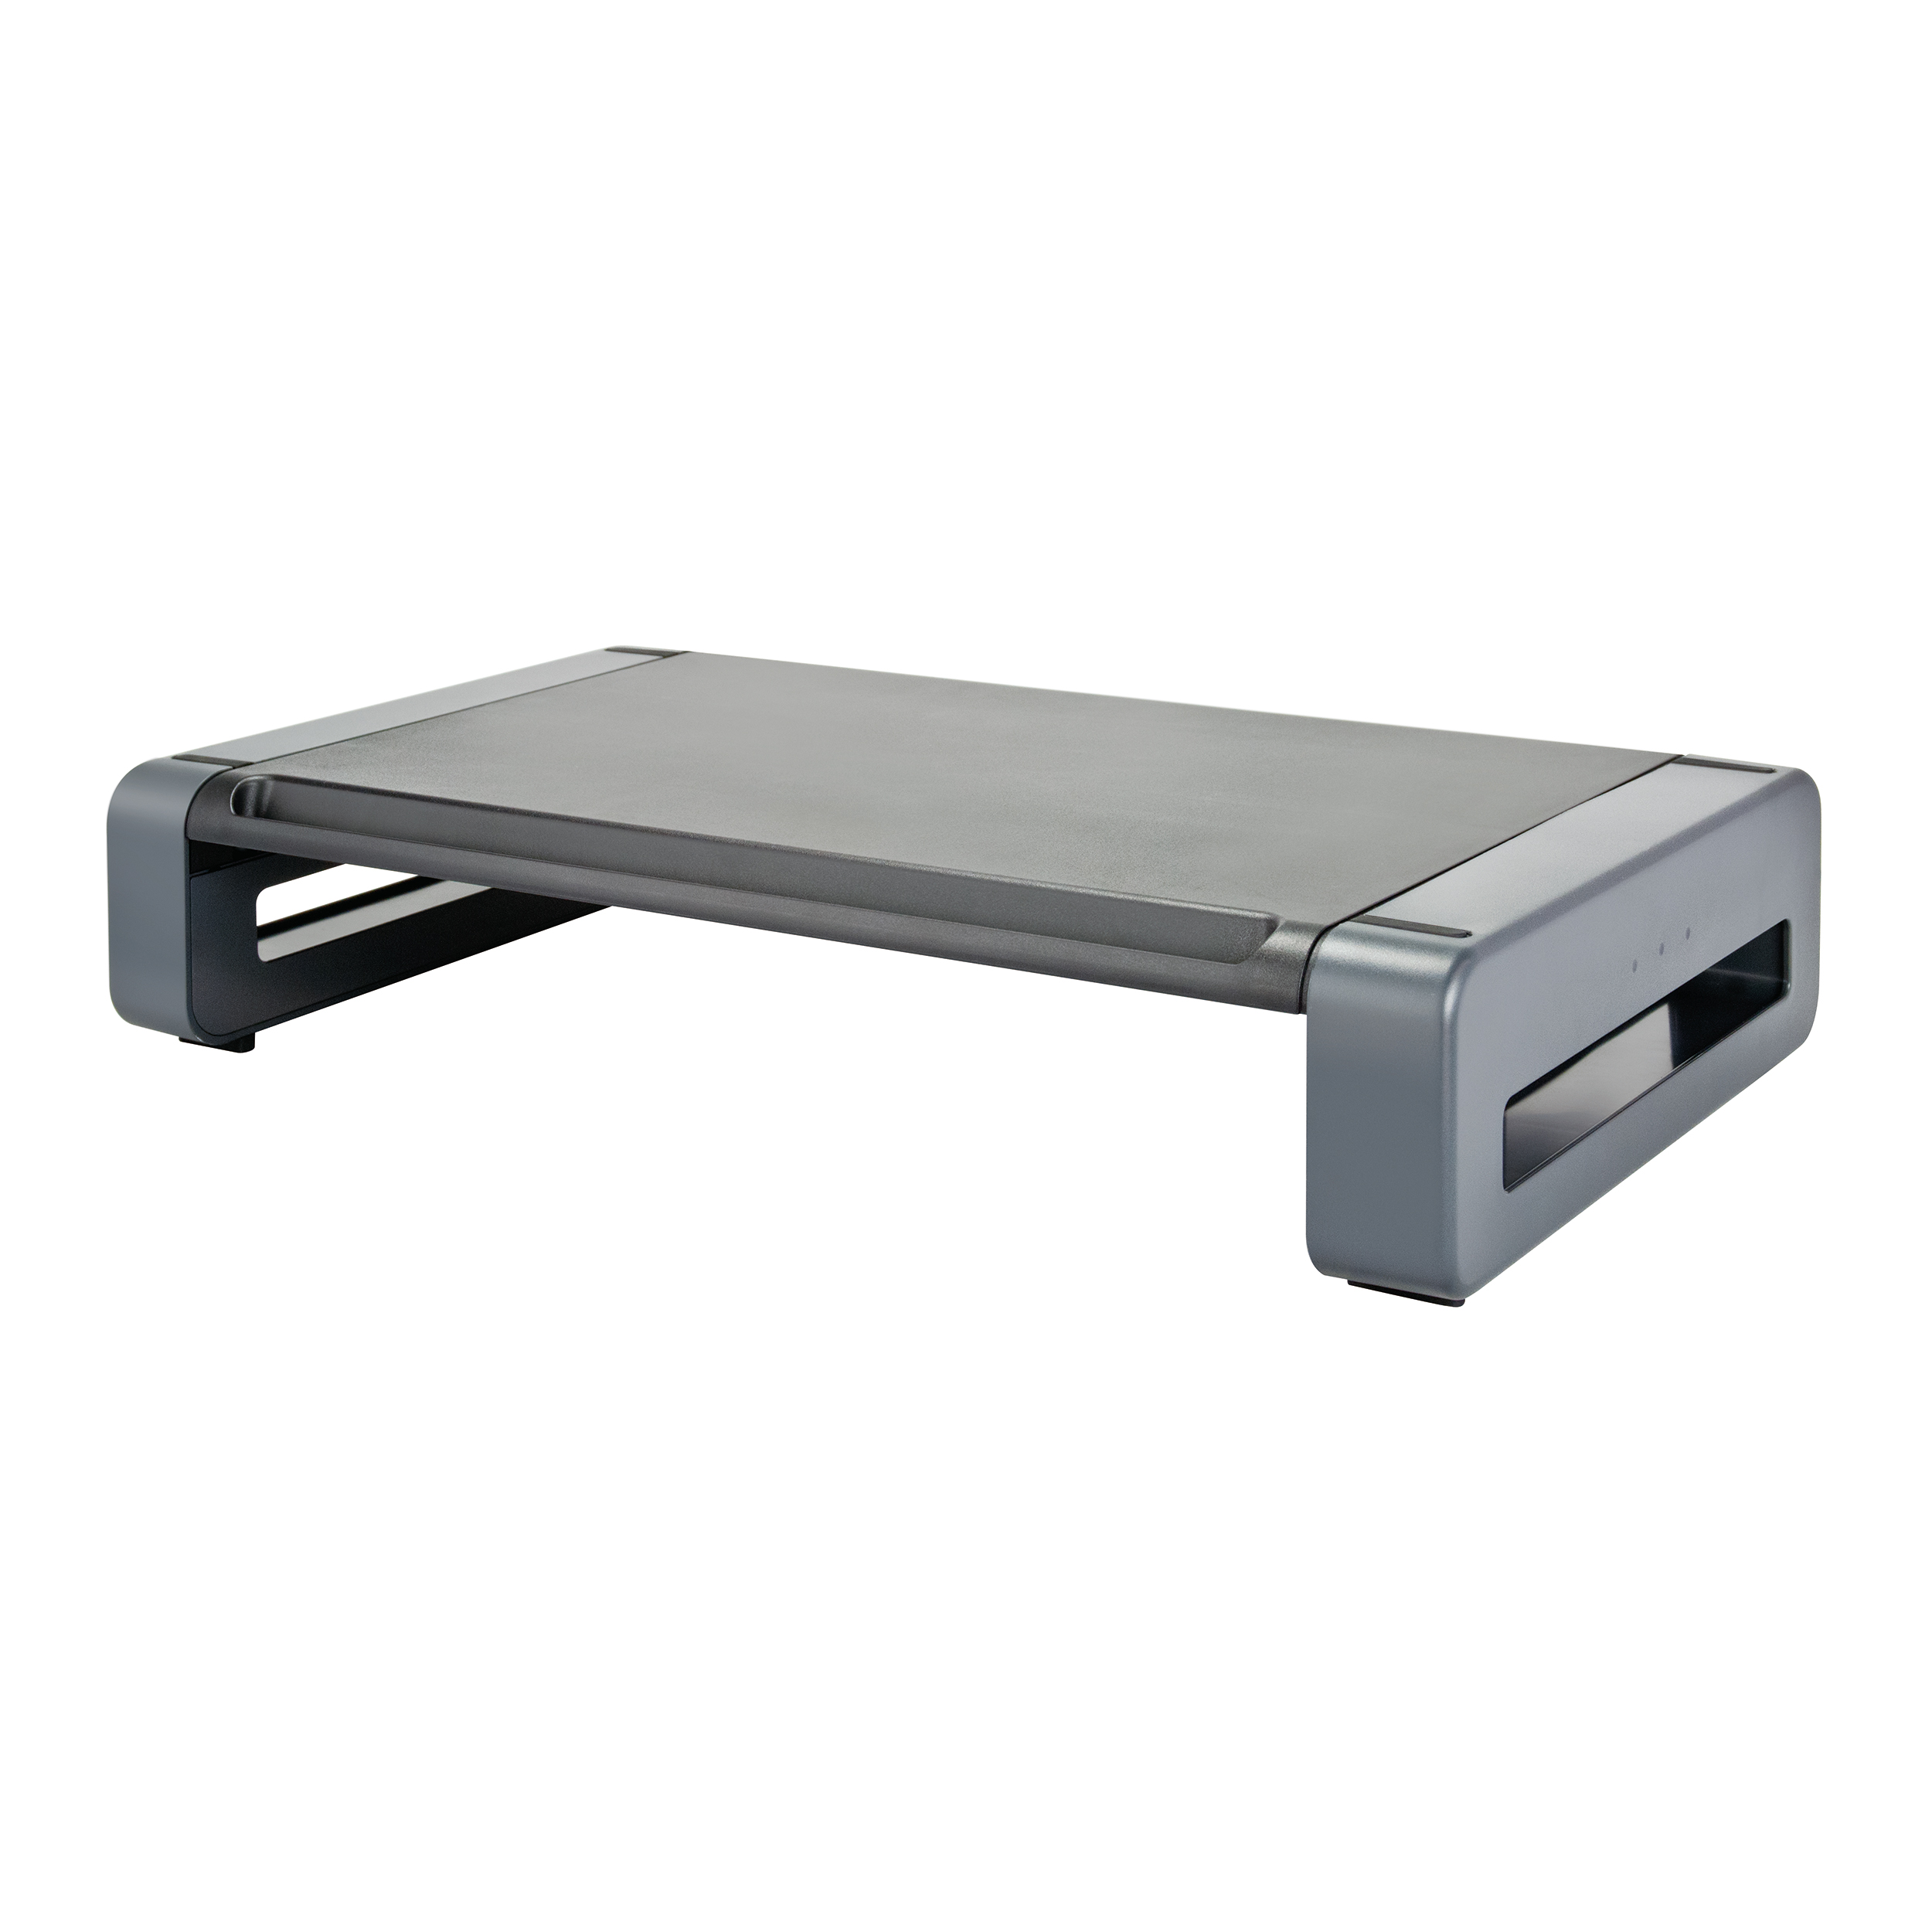 CPU stand Deluxe Monitor Stand Capacity Up to 24inch Ref MS-1001G